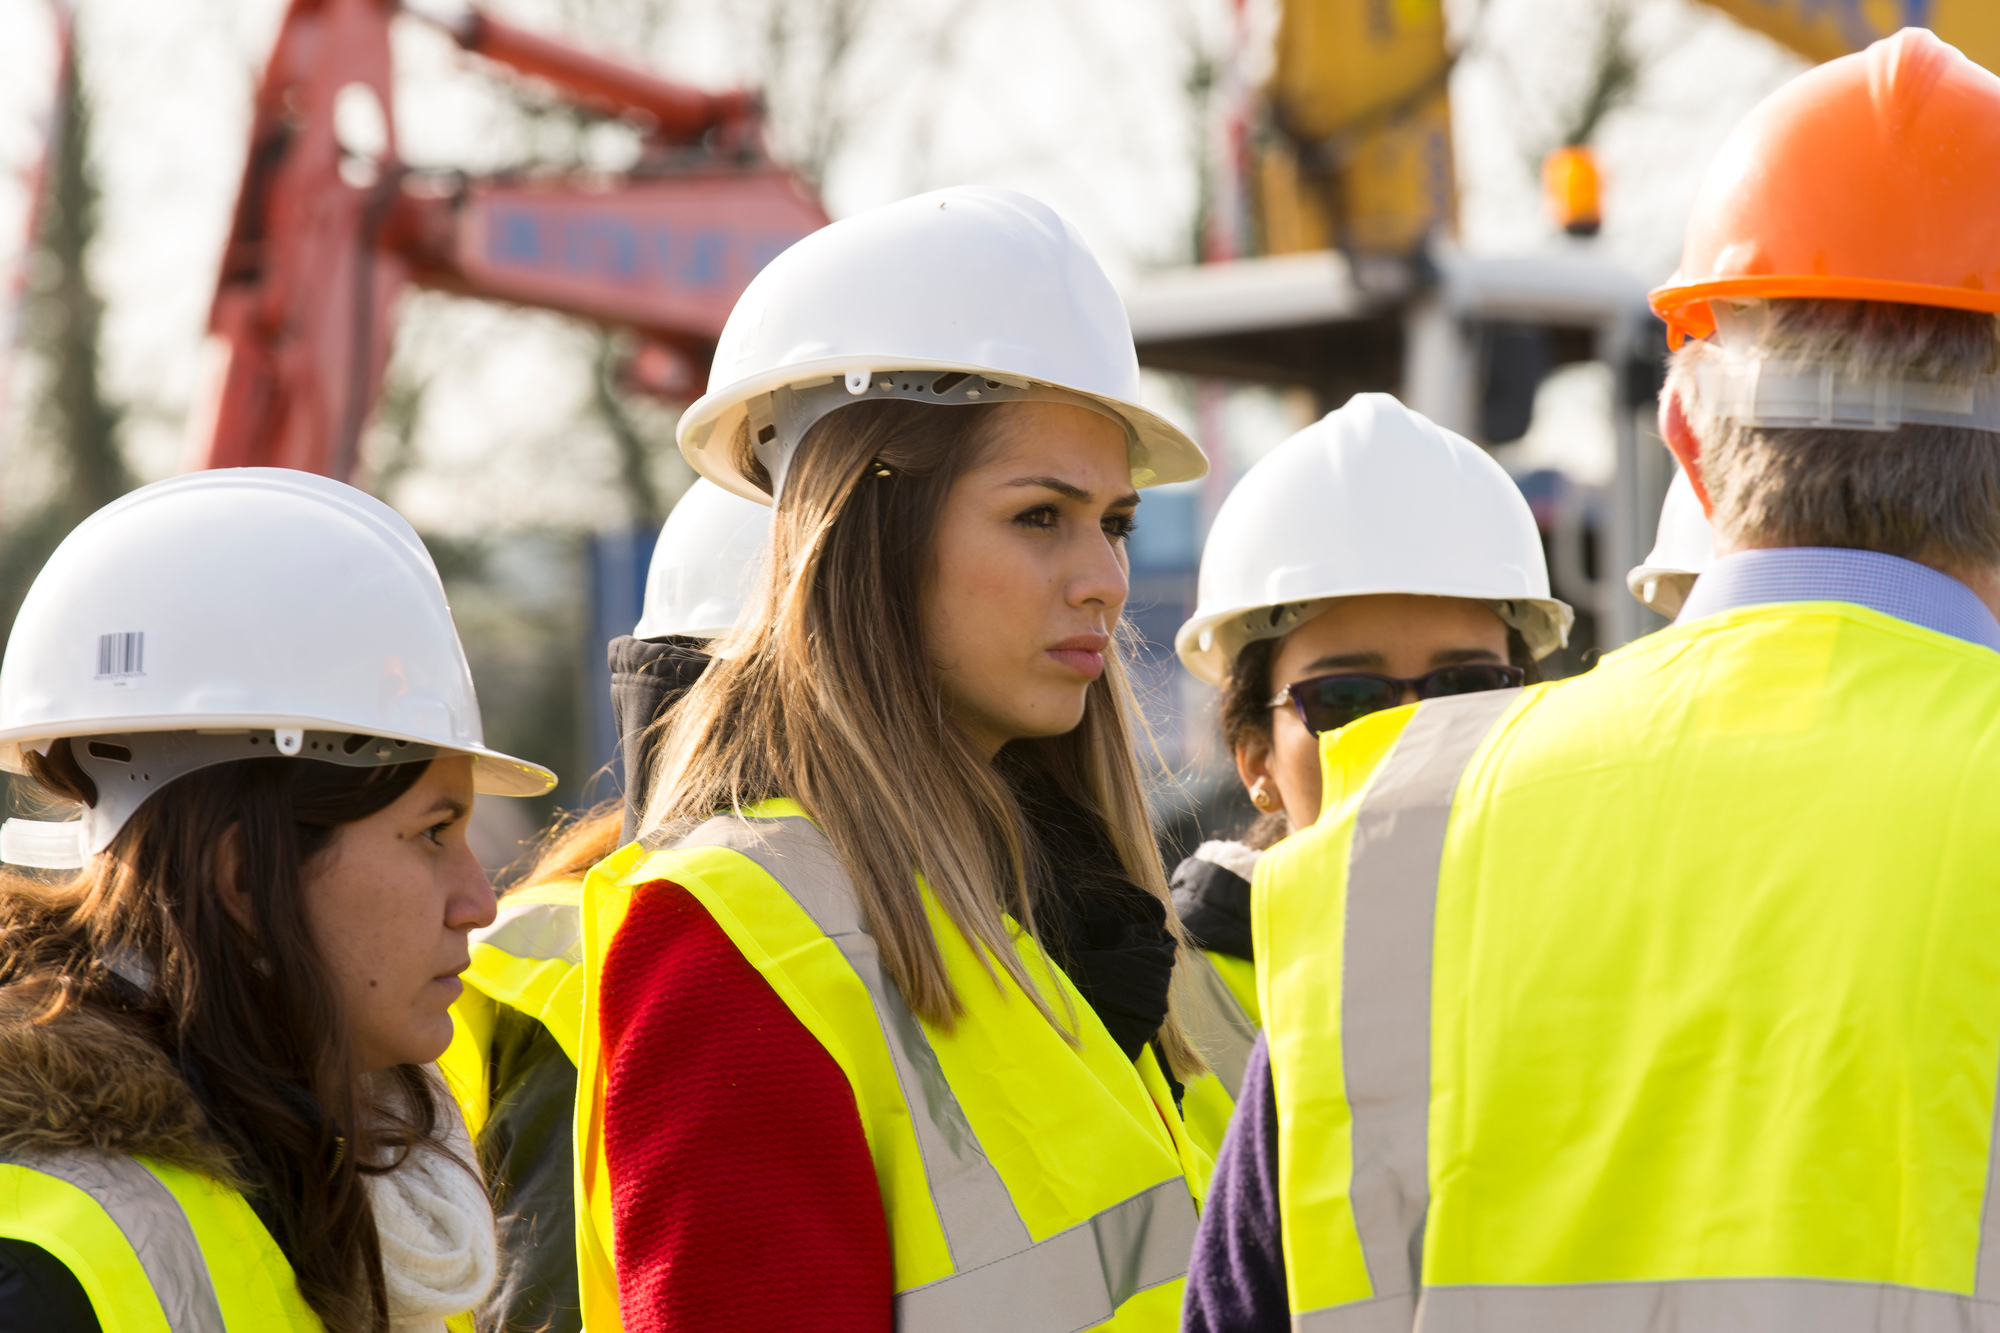 Students on a field trip at a building site